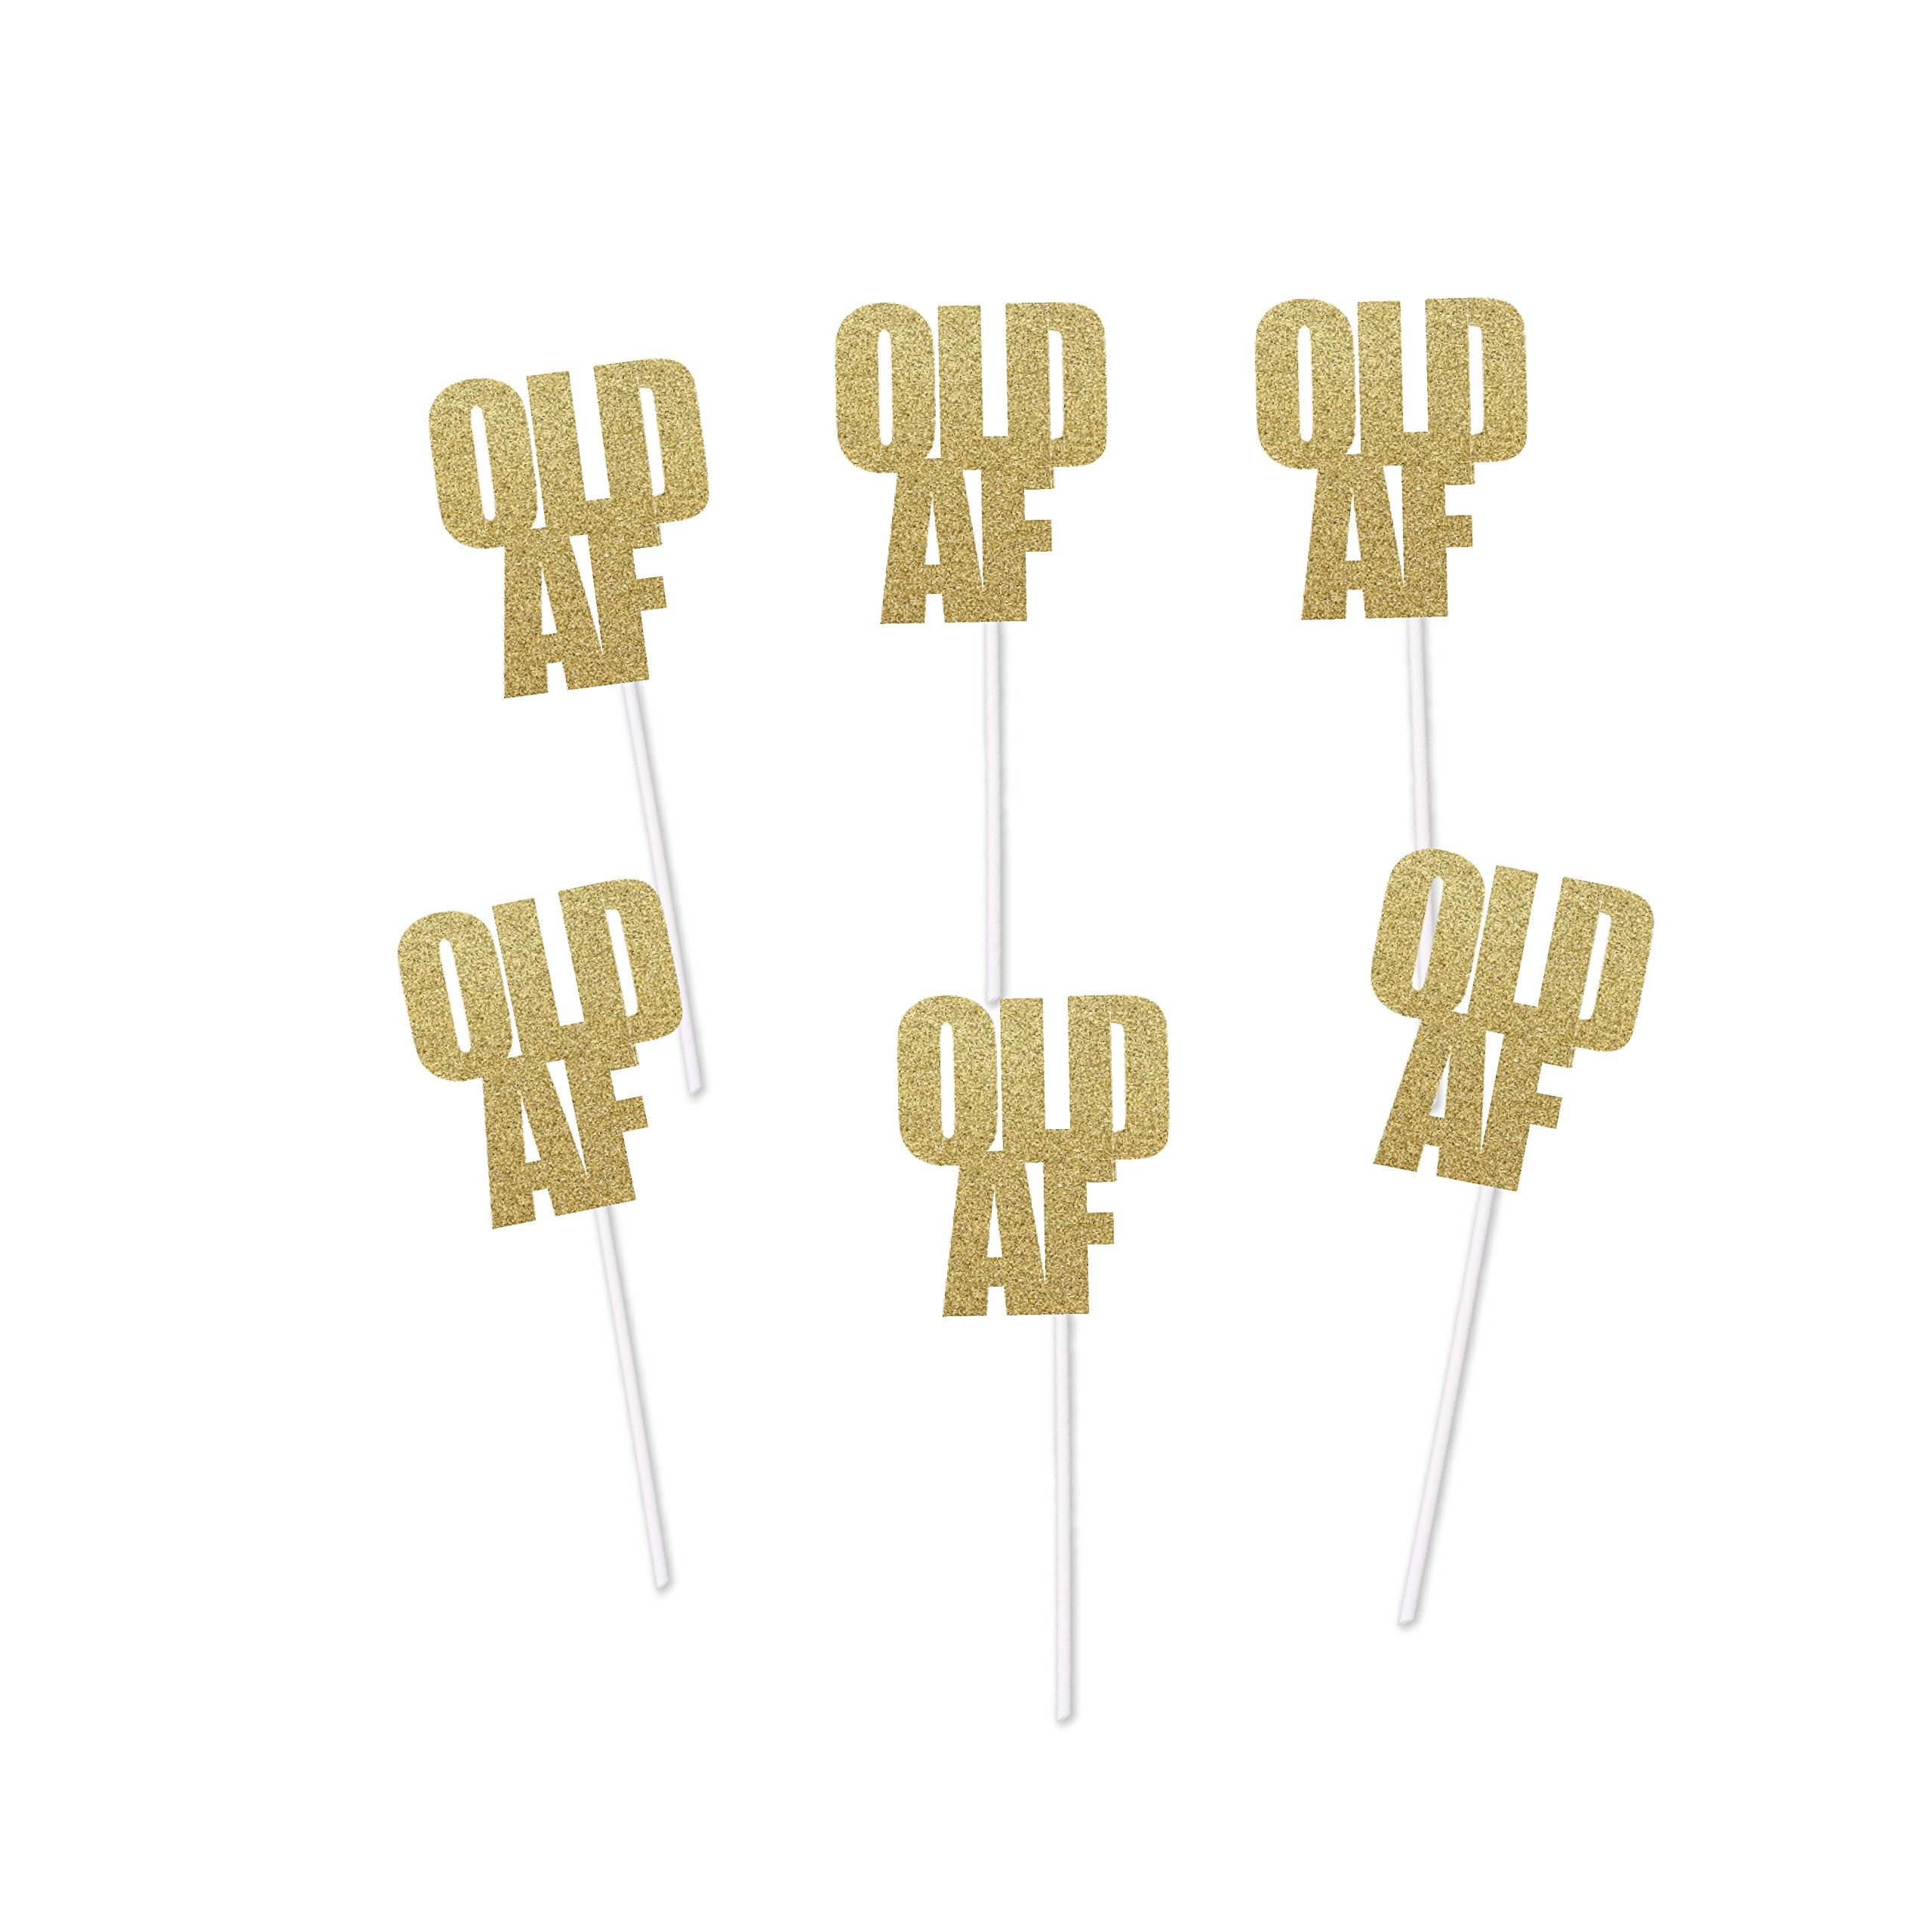 Old AF Cupcake Toppers for Birthday Party (Gold Glitter) - Over the Hill Dirty Thirty Decorations Cake by PinkFish Shop